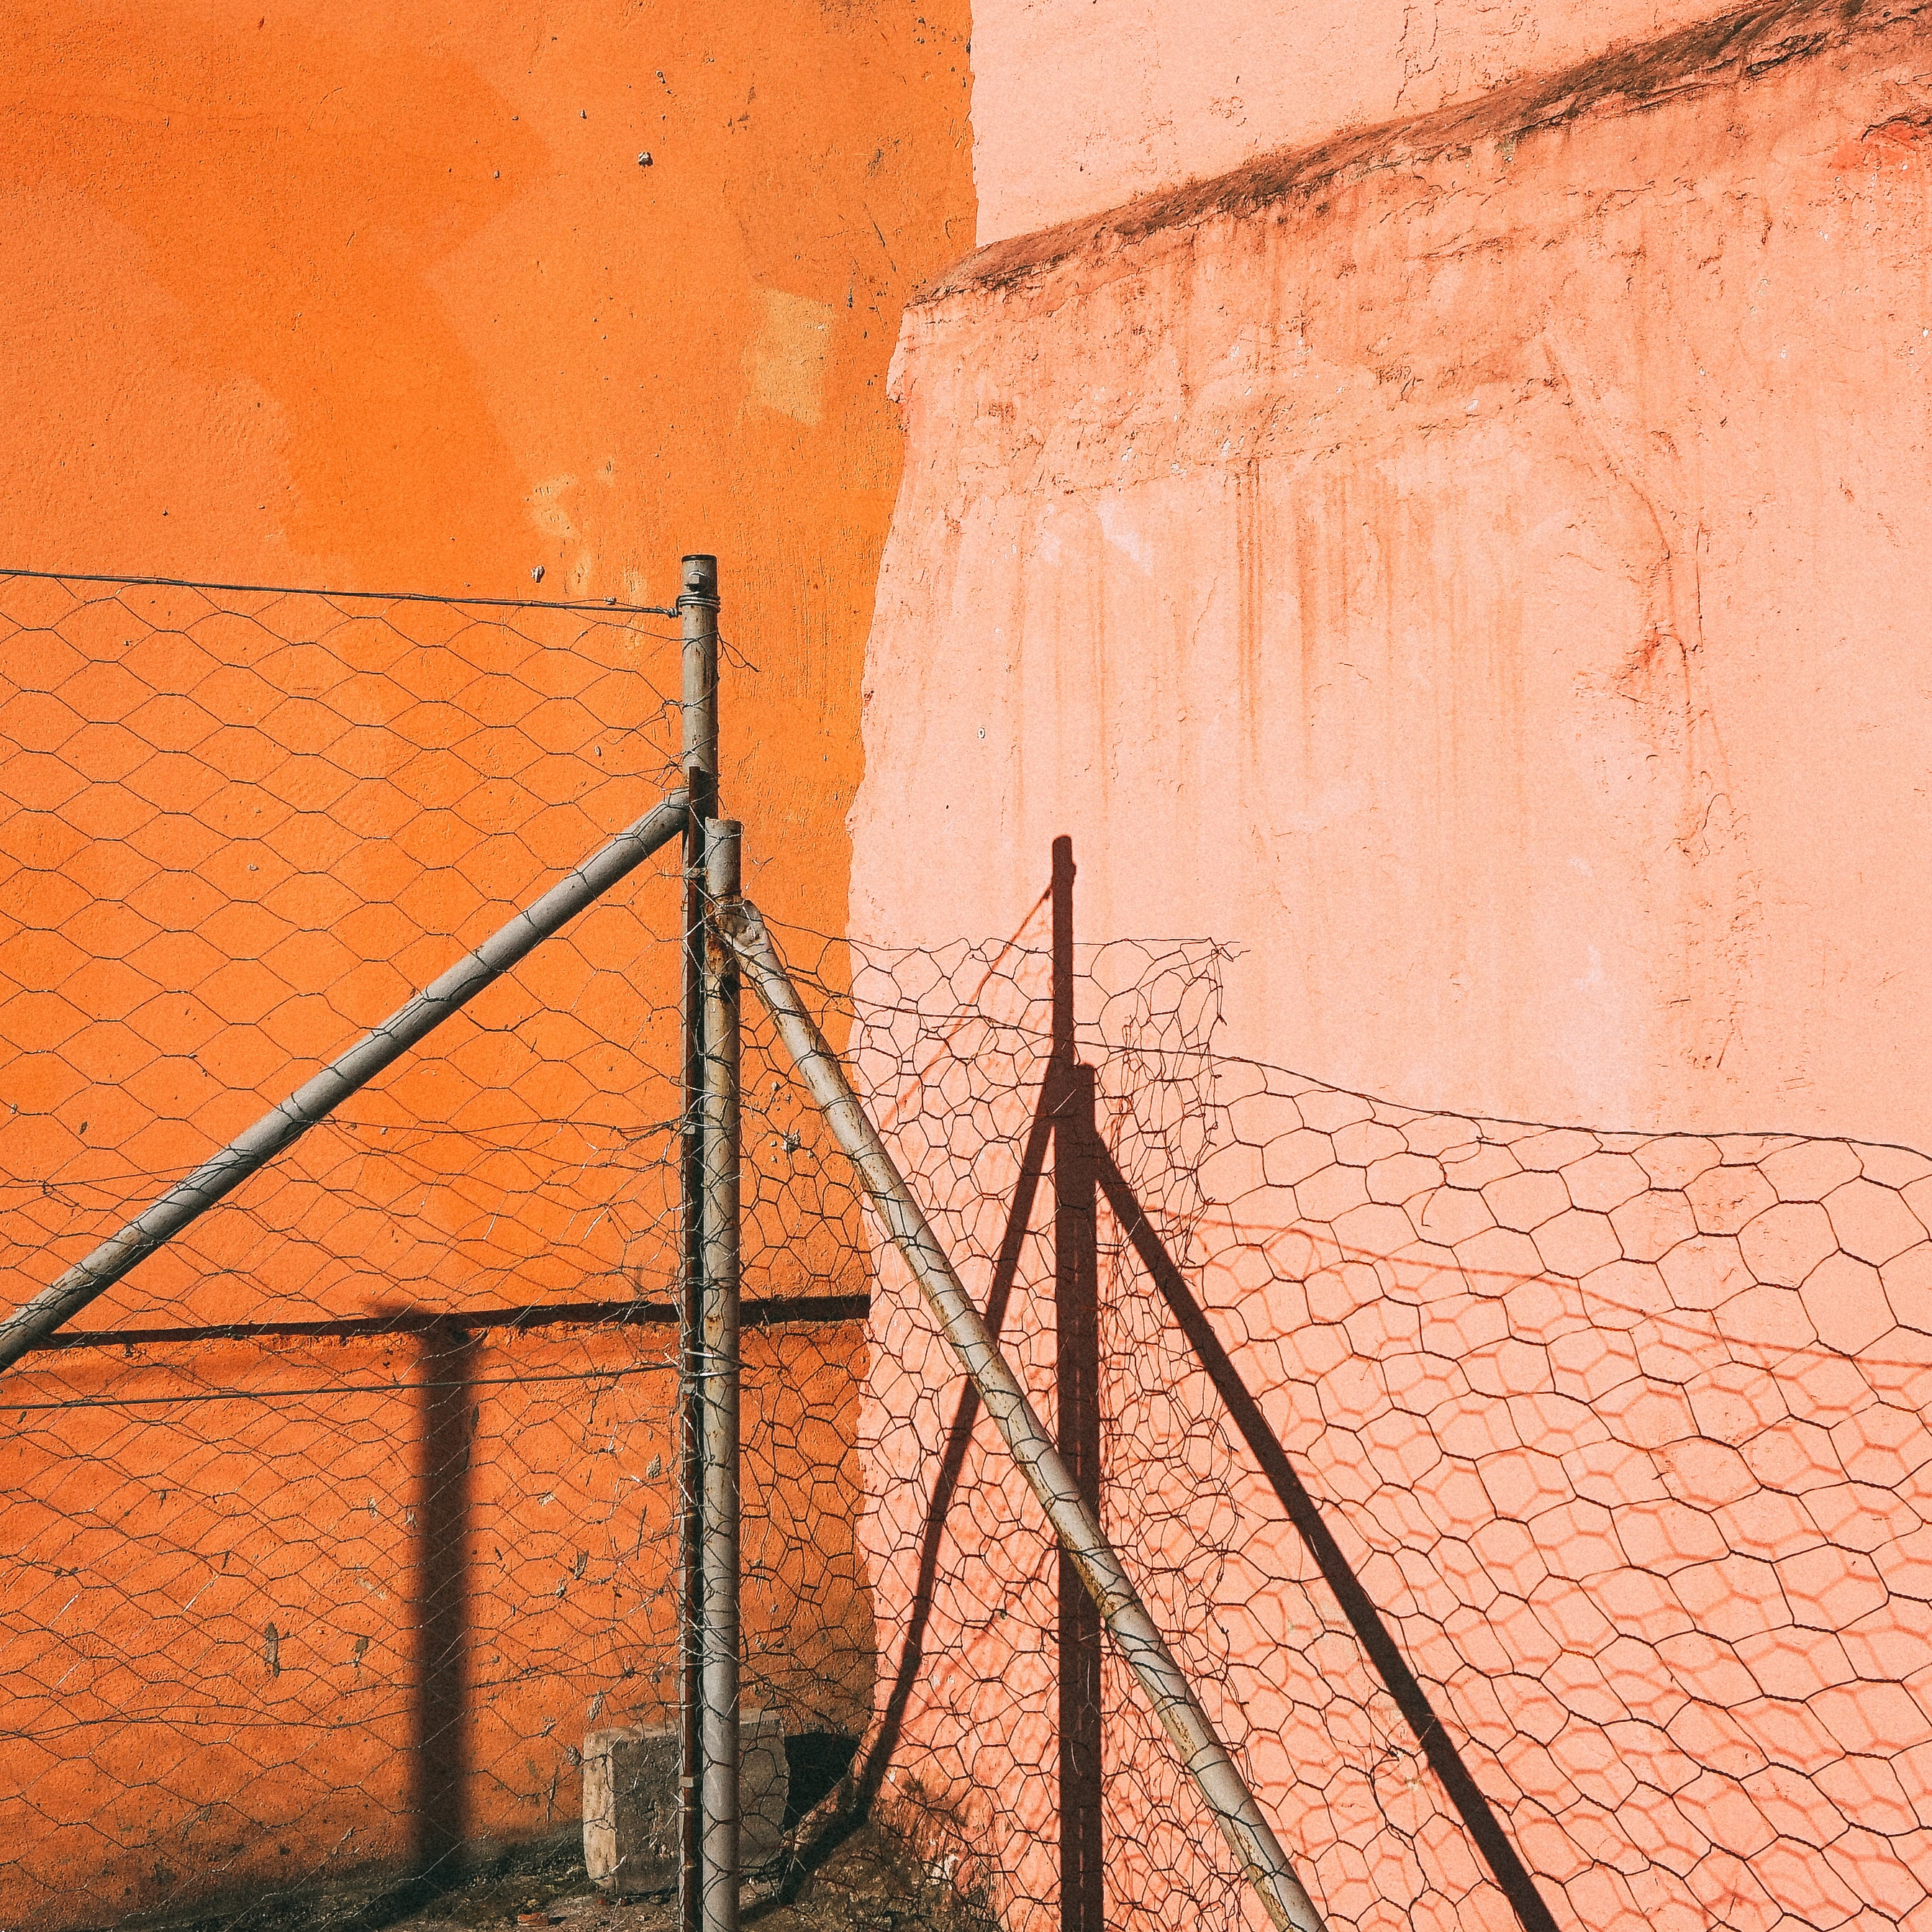 barbed wire on gray pipes near orange wall